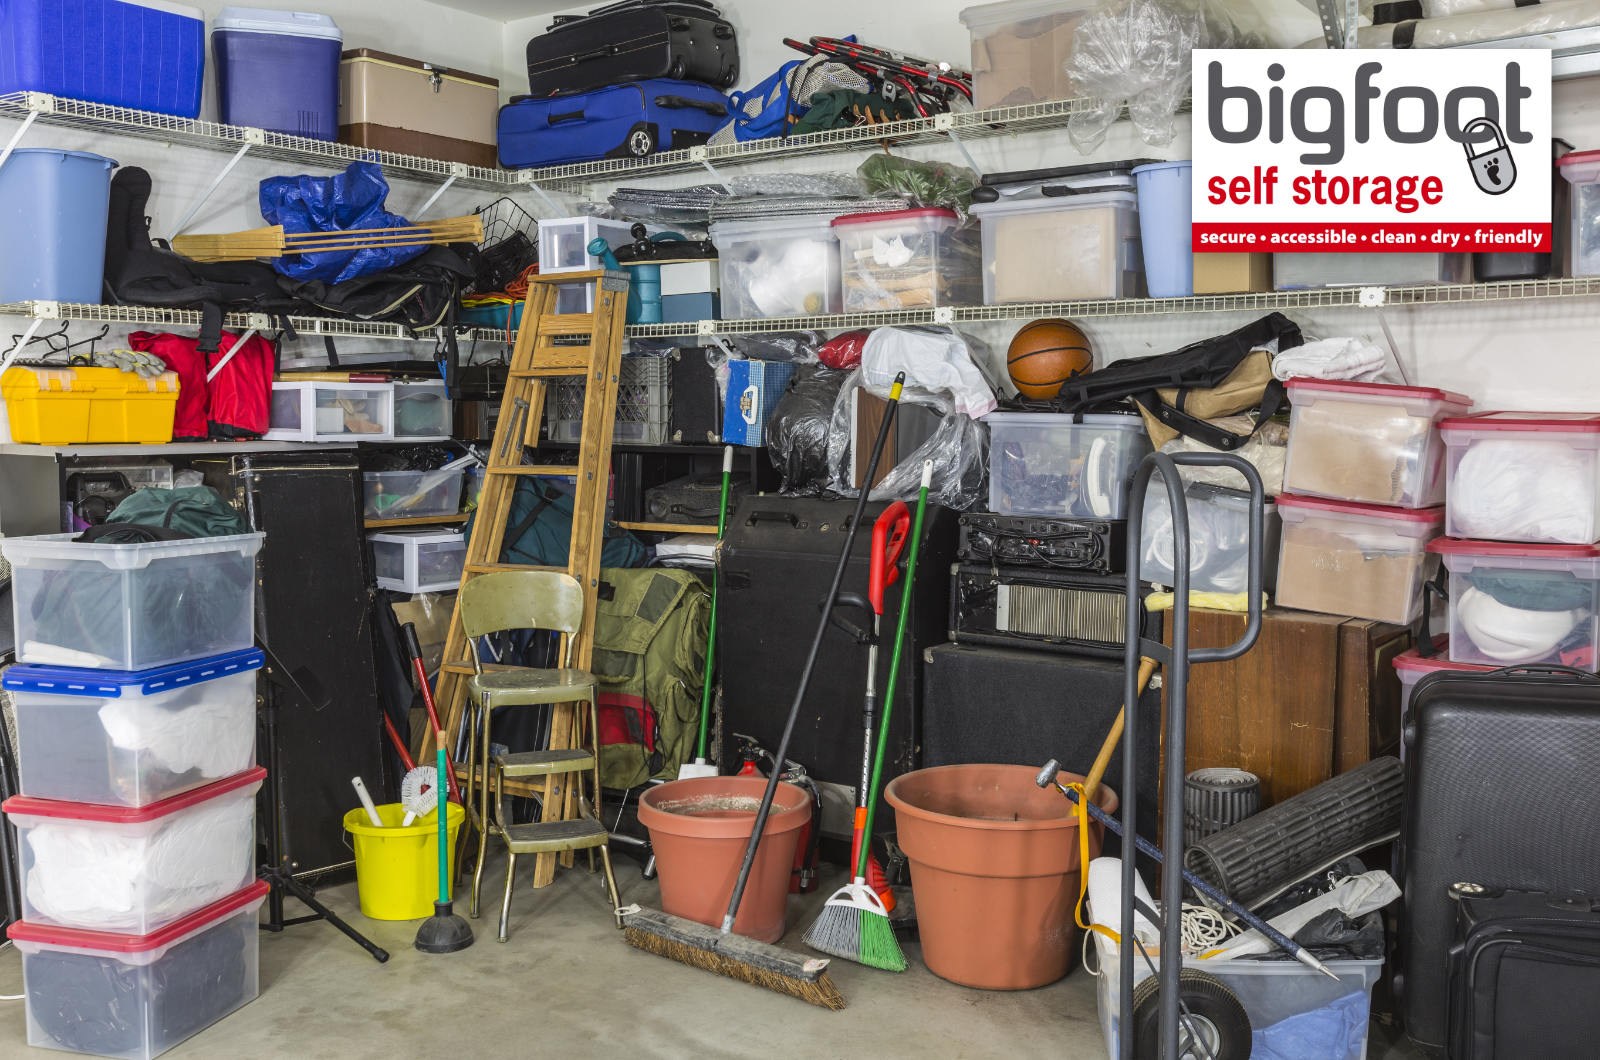 Tips for choosing the right size storage unit